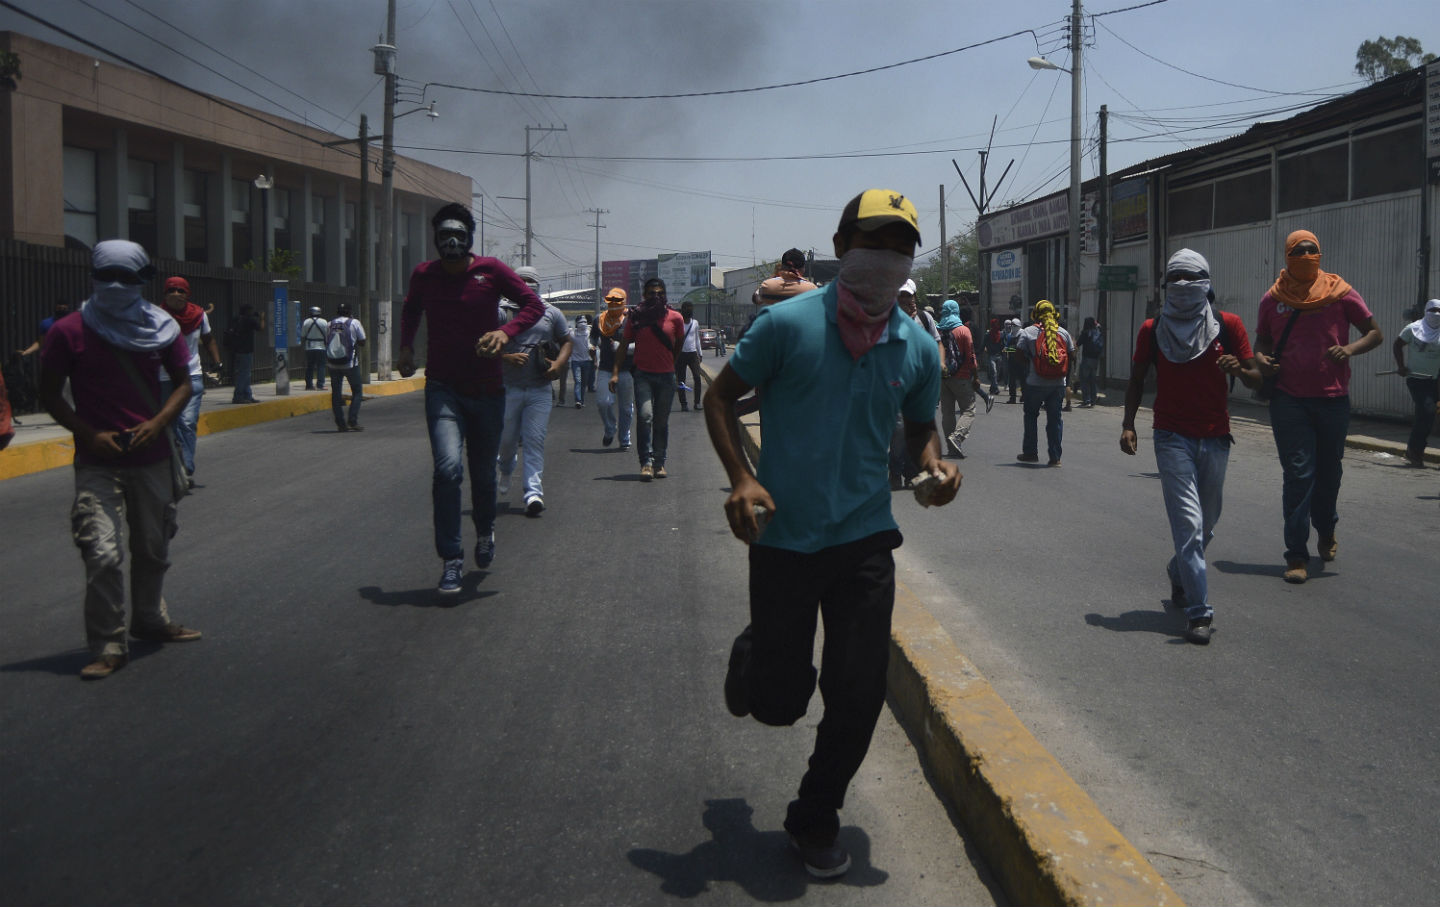 Protest in Chilpancingo Mexico